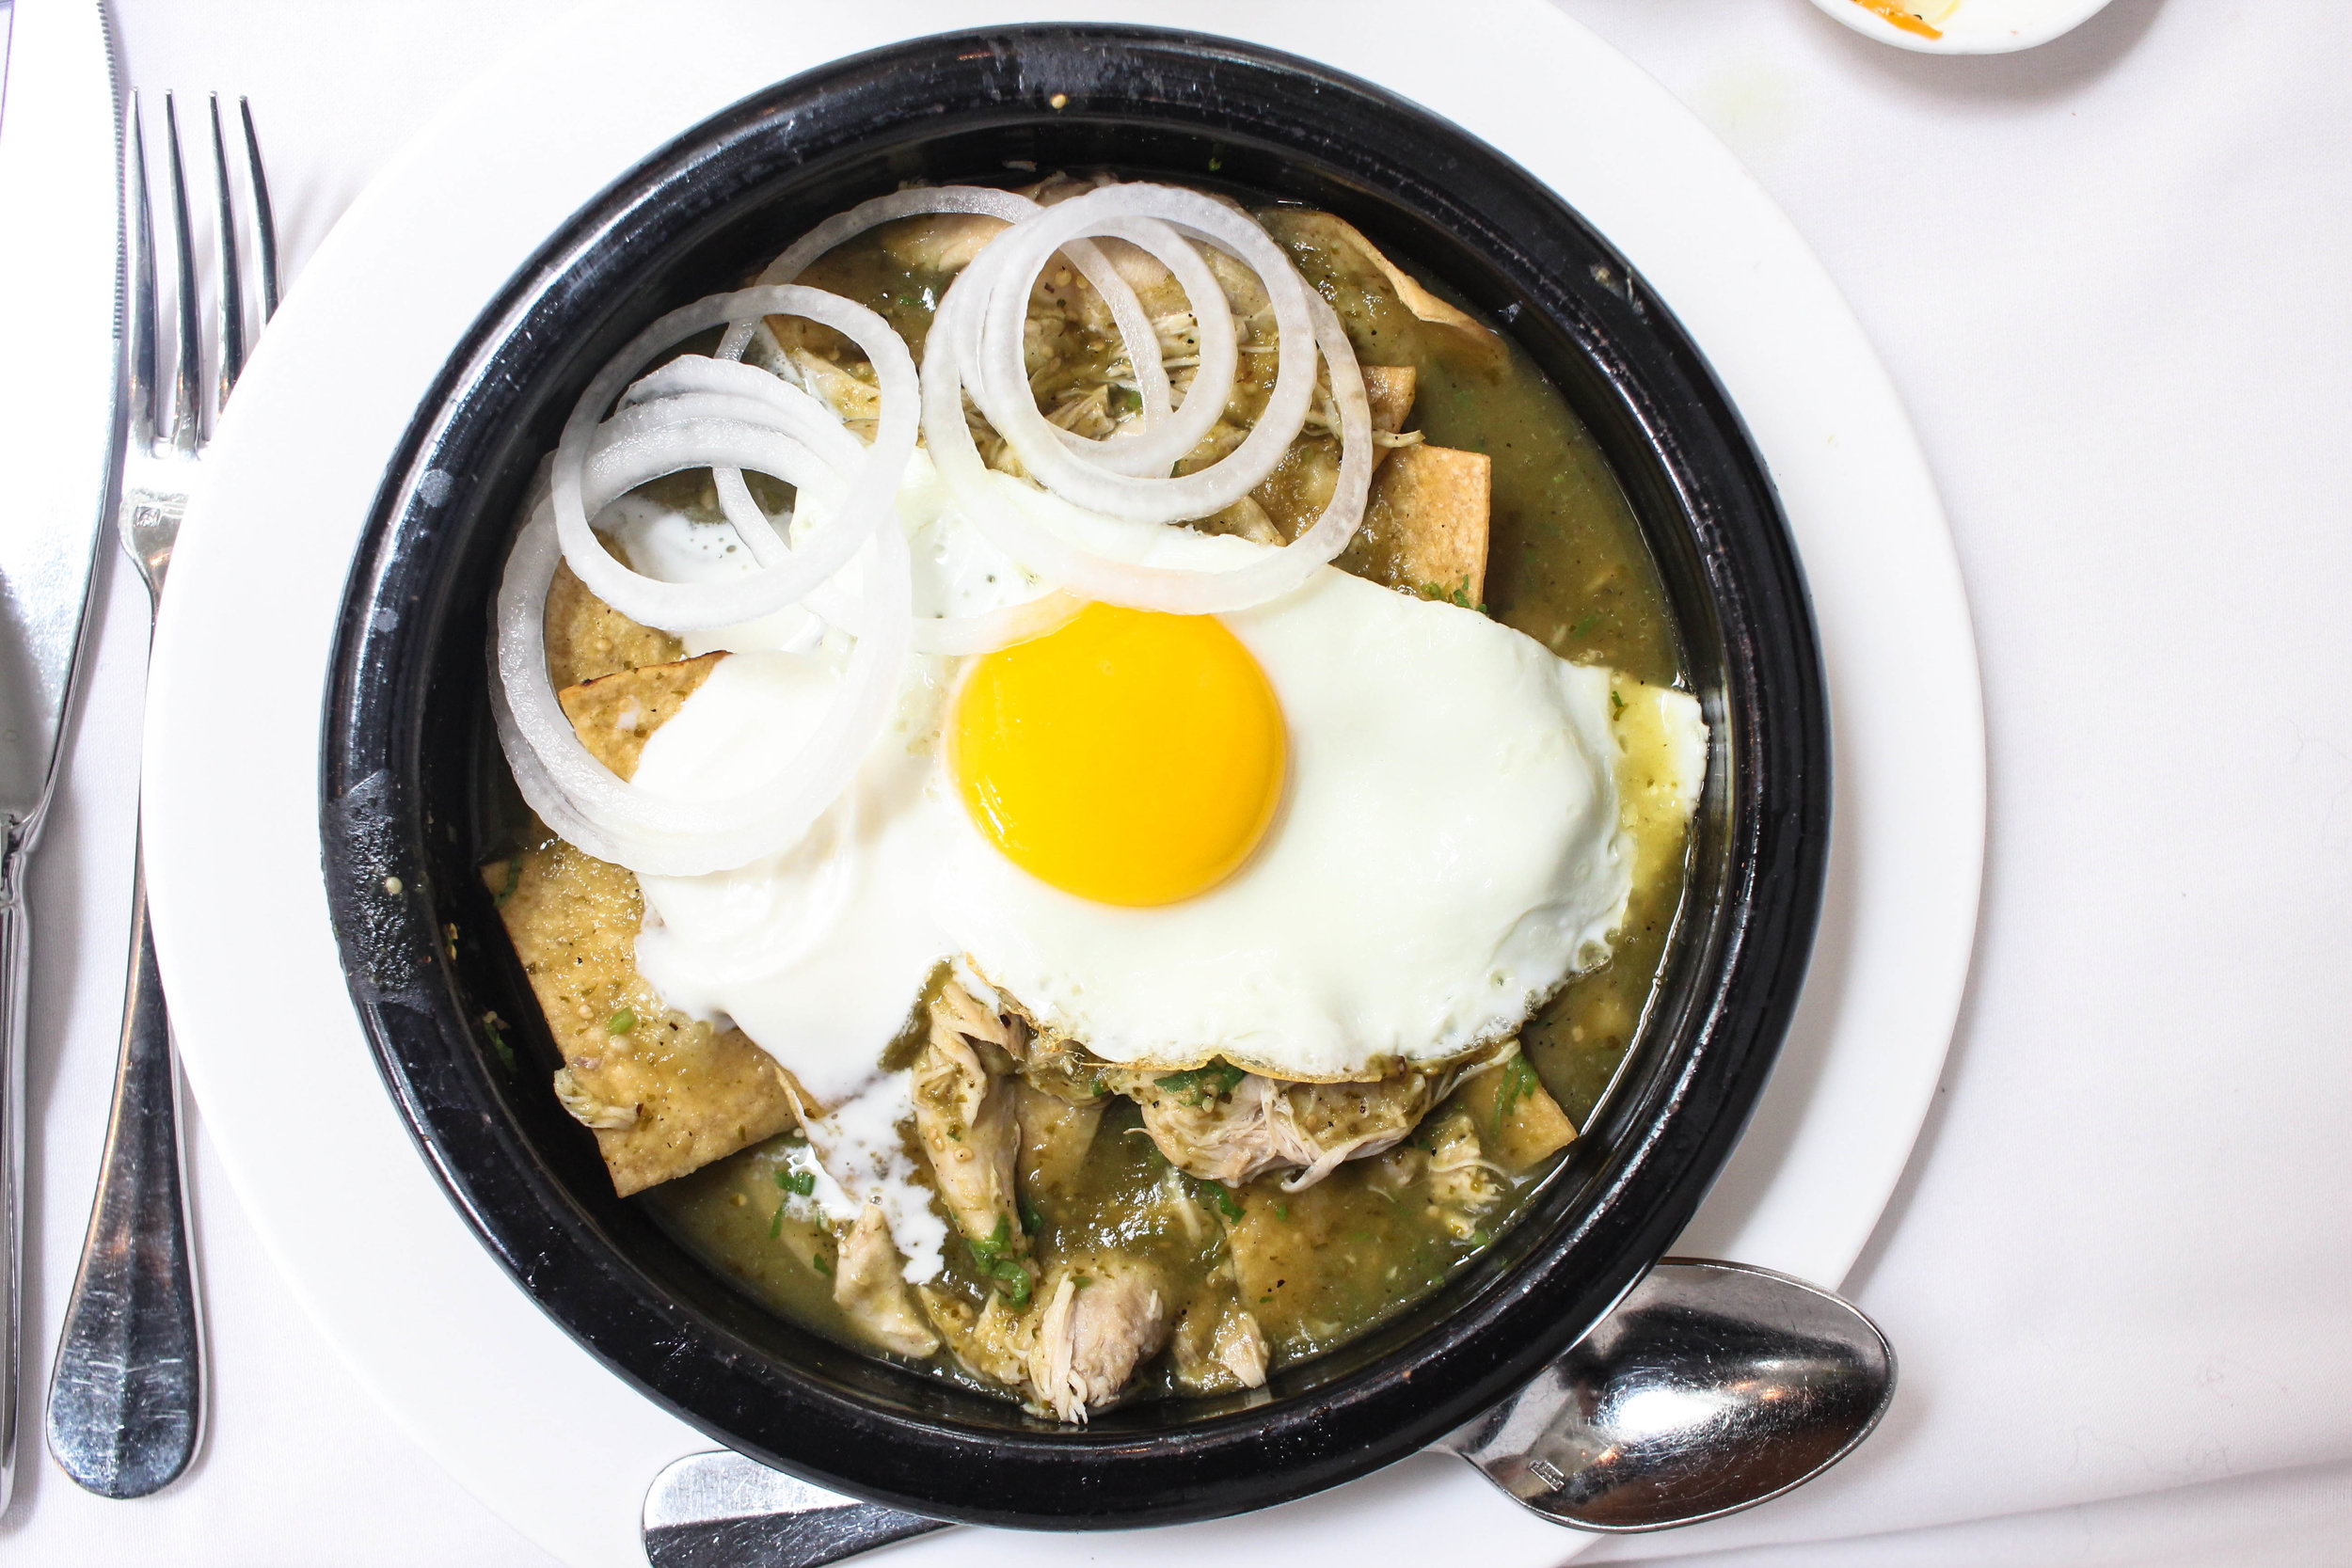 Chilaquiles verdes with chicken and a fried egg -view from above